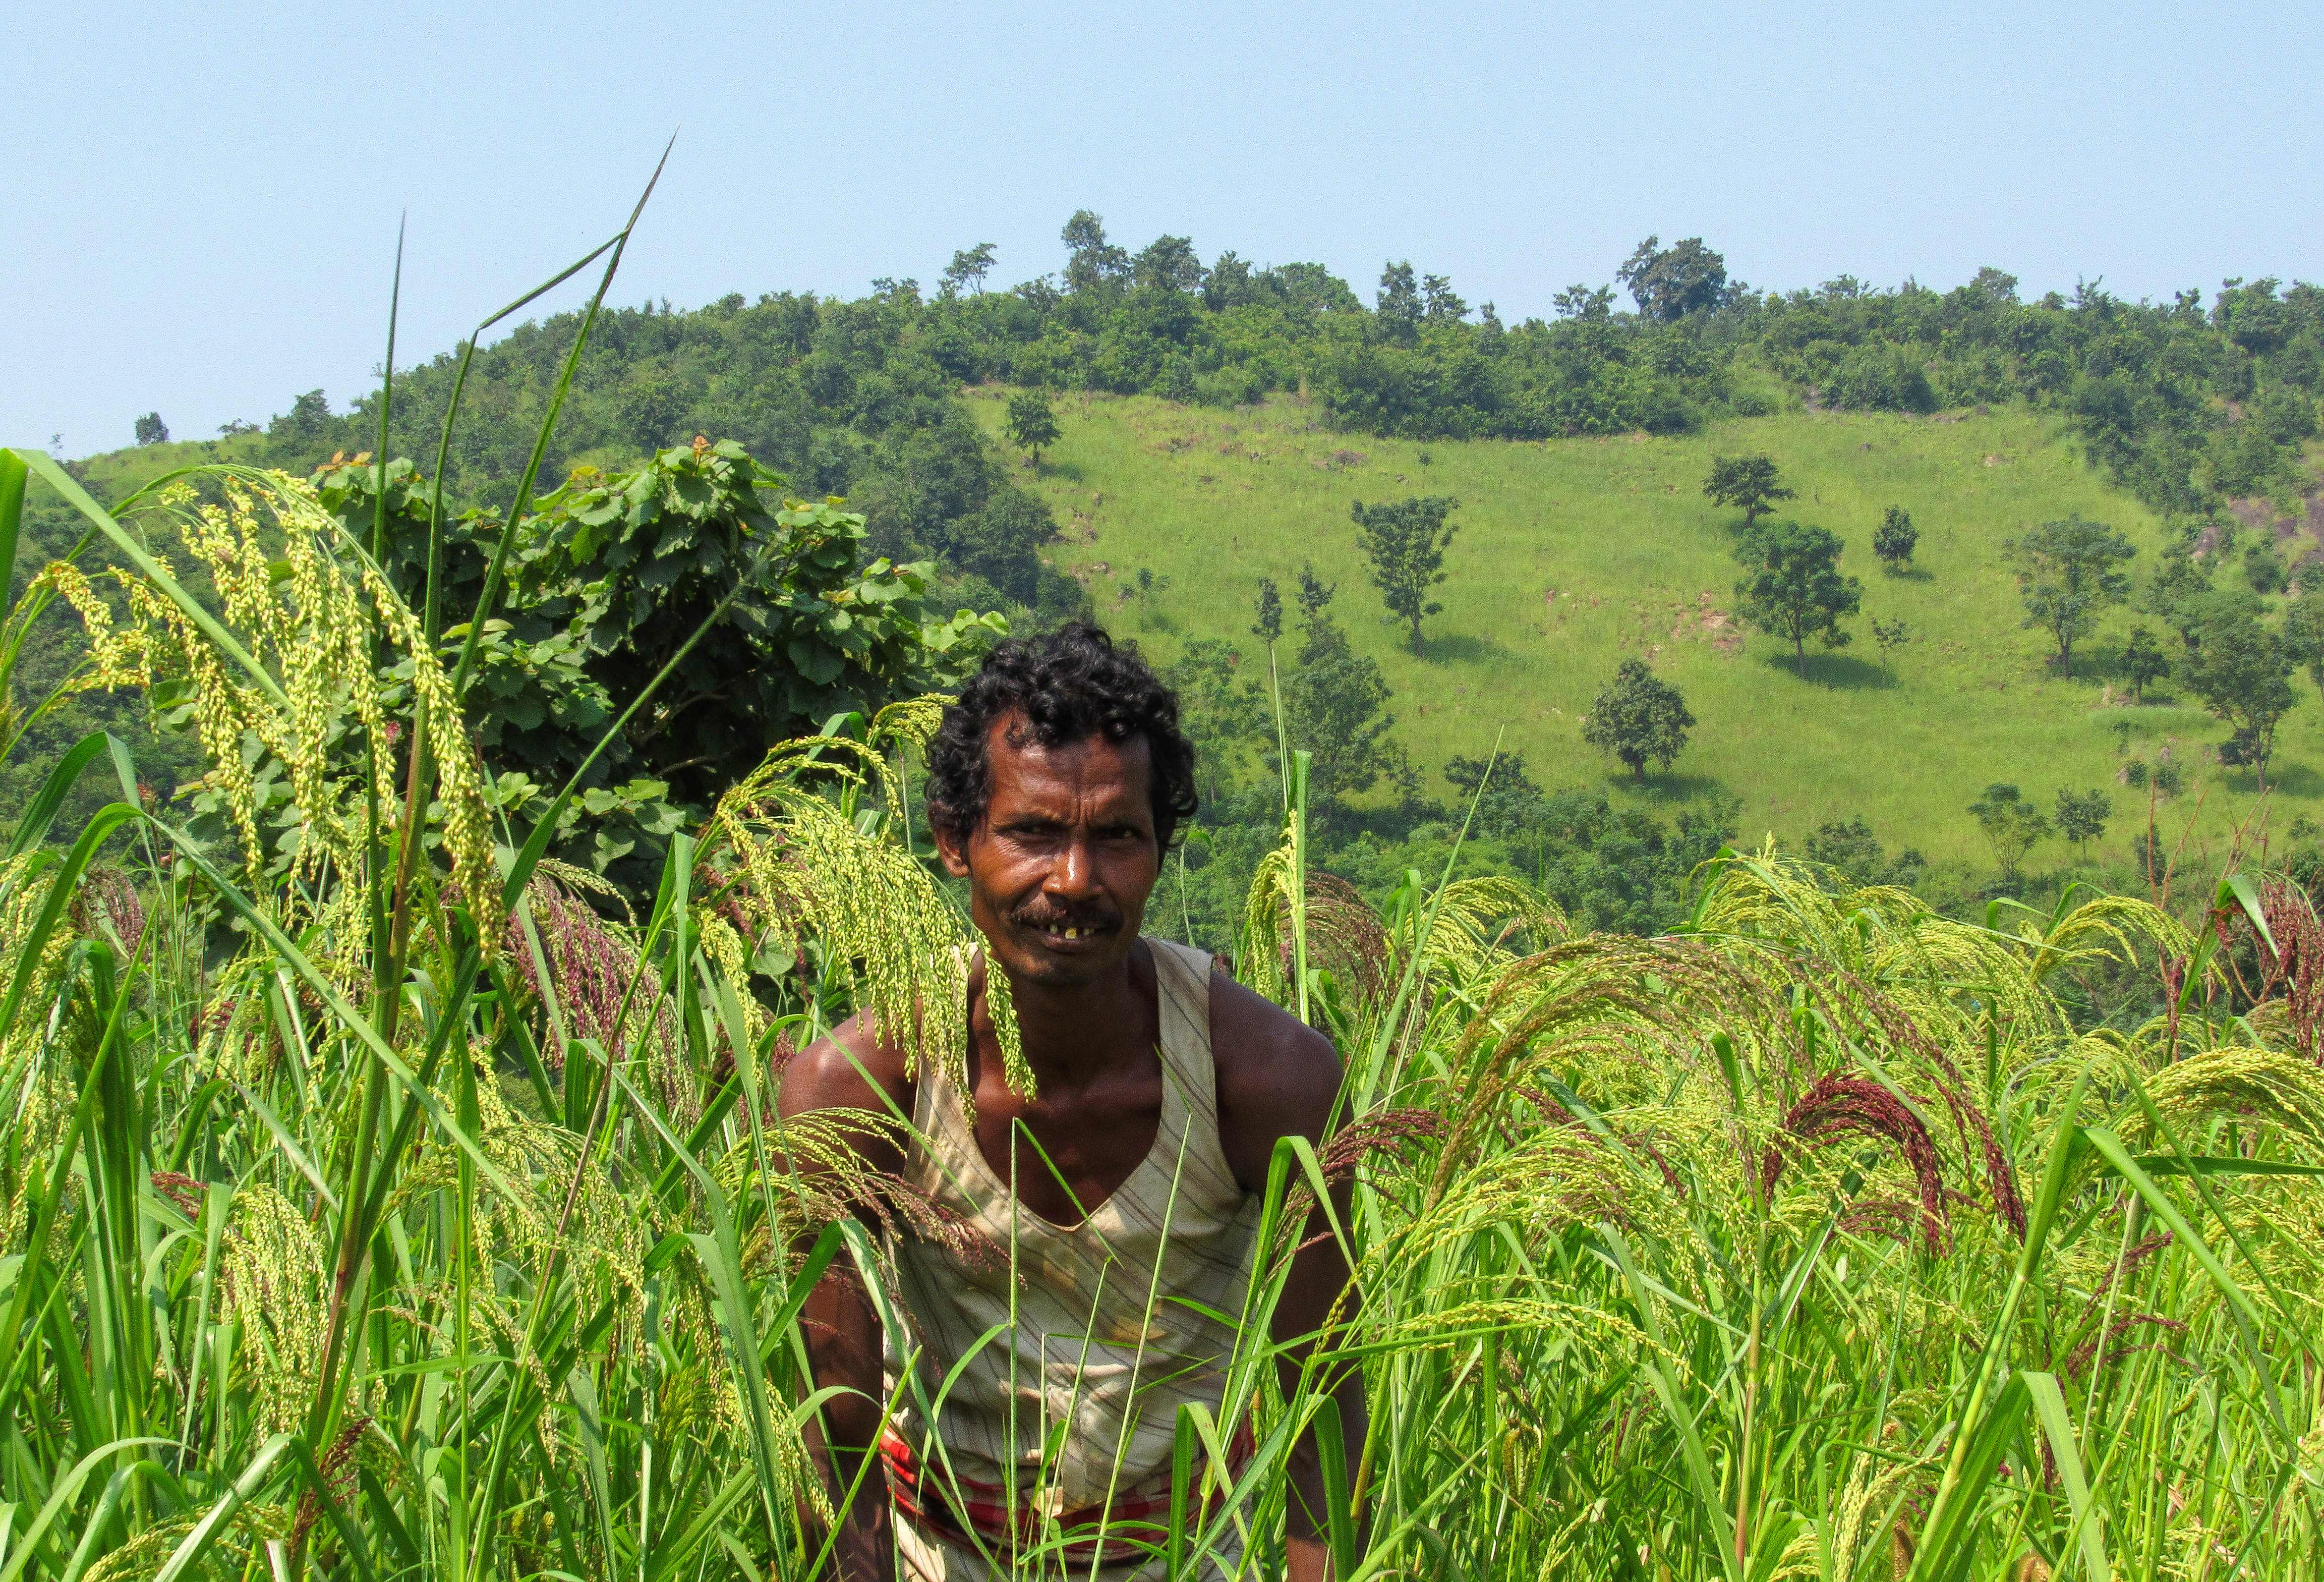 A mix of millets are cultivated on small farms